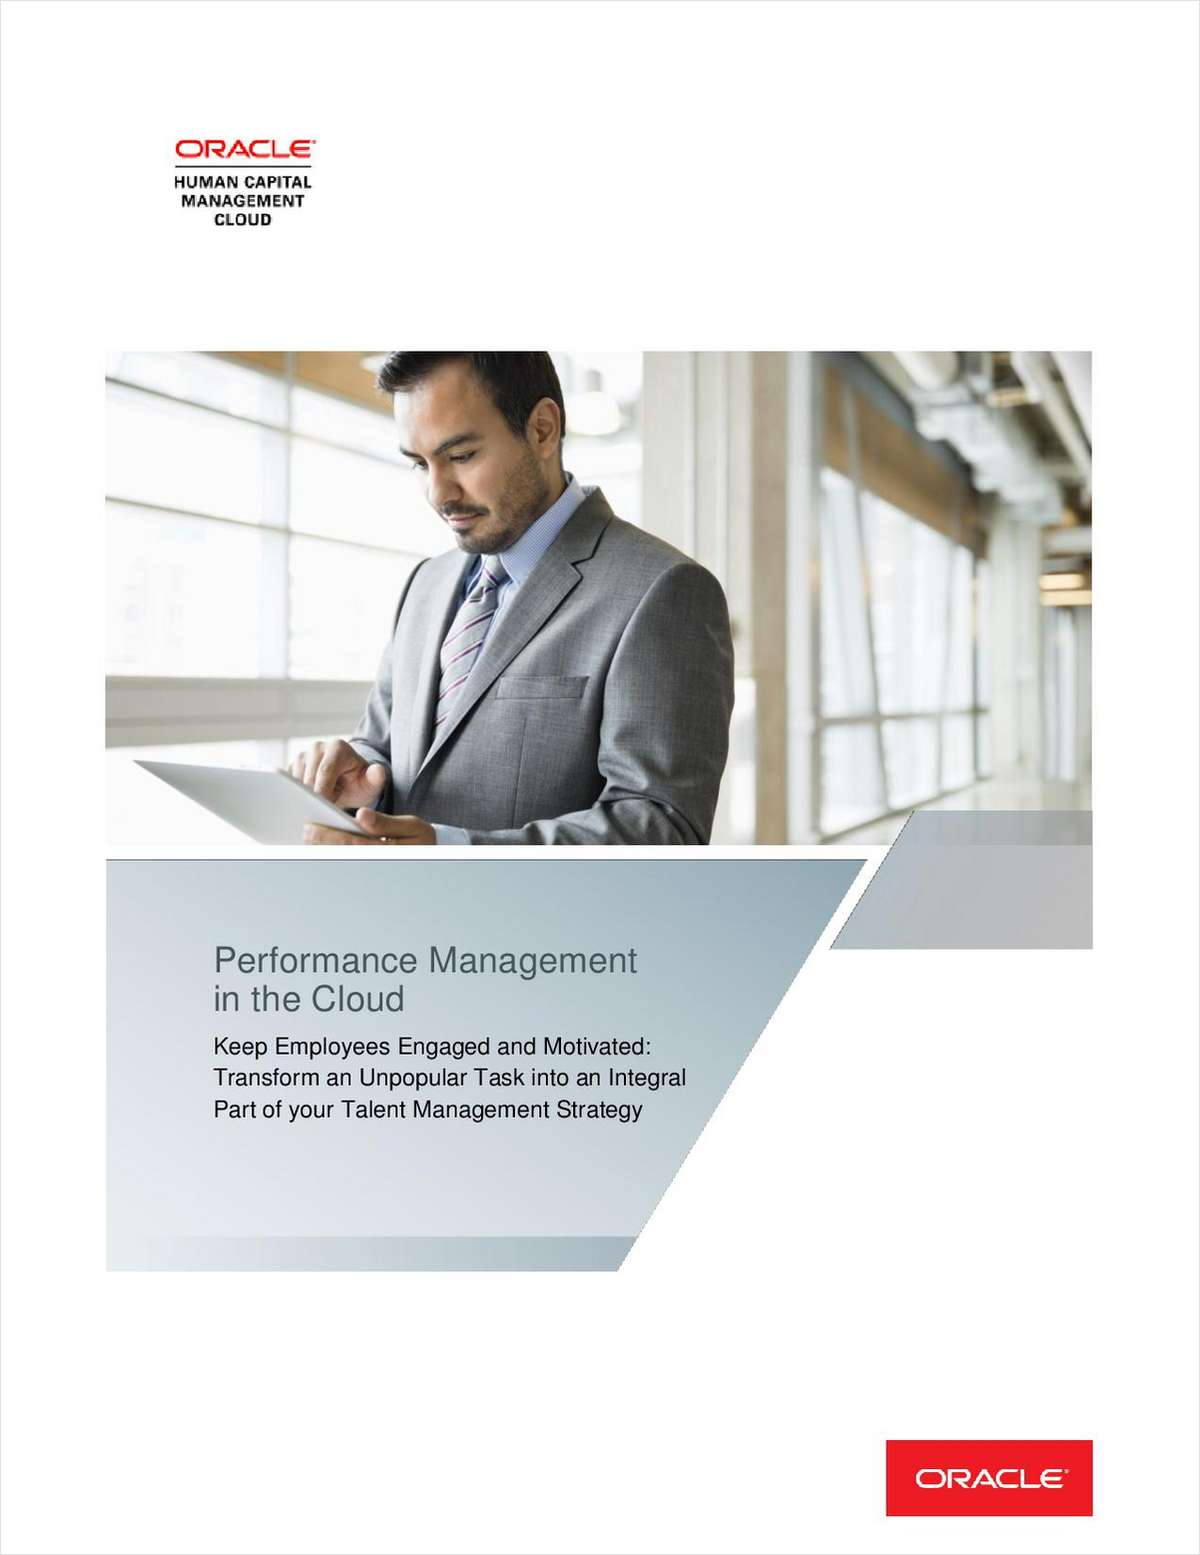 Performance Management: Keep Employees Engaged and Motivated